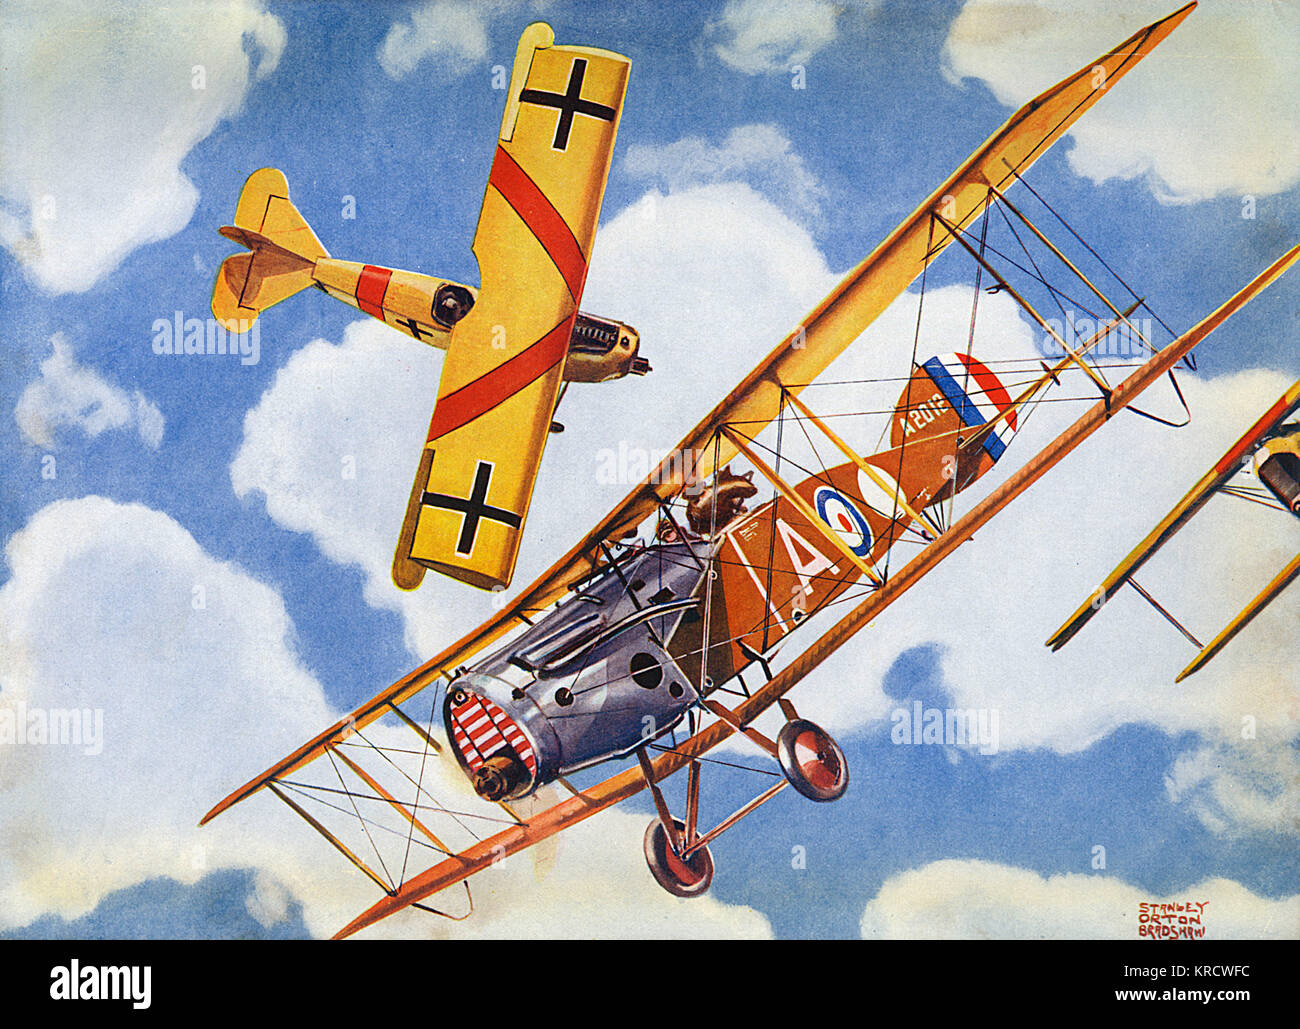 A deadly game of life and death is played out over Europe as a Bristol flies against Fokker D.VIIs Date: 1918 - Stock Image